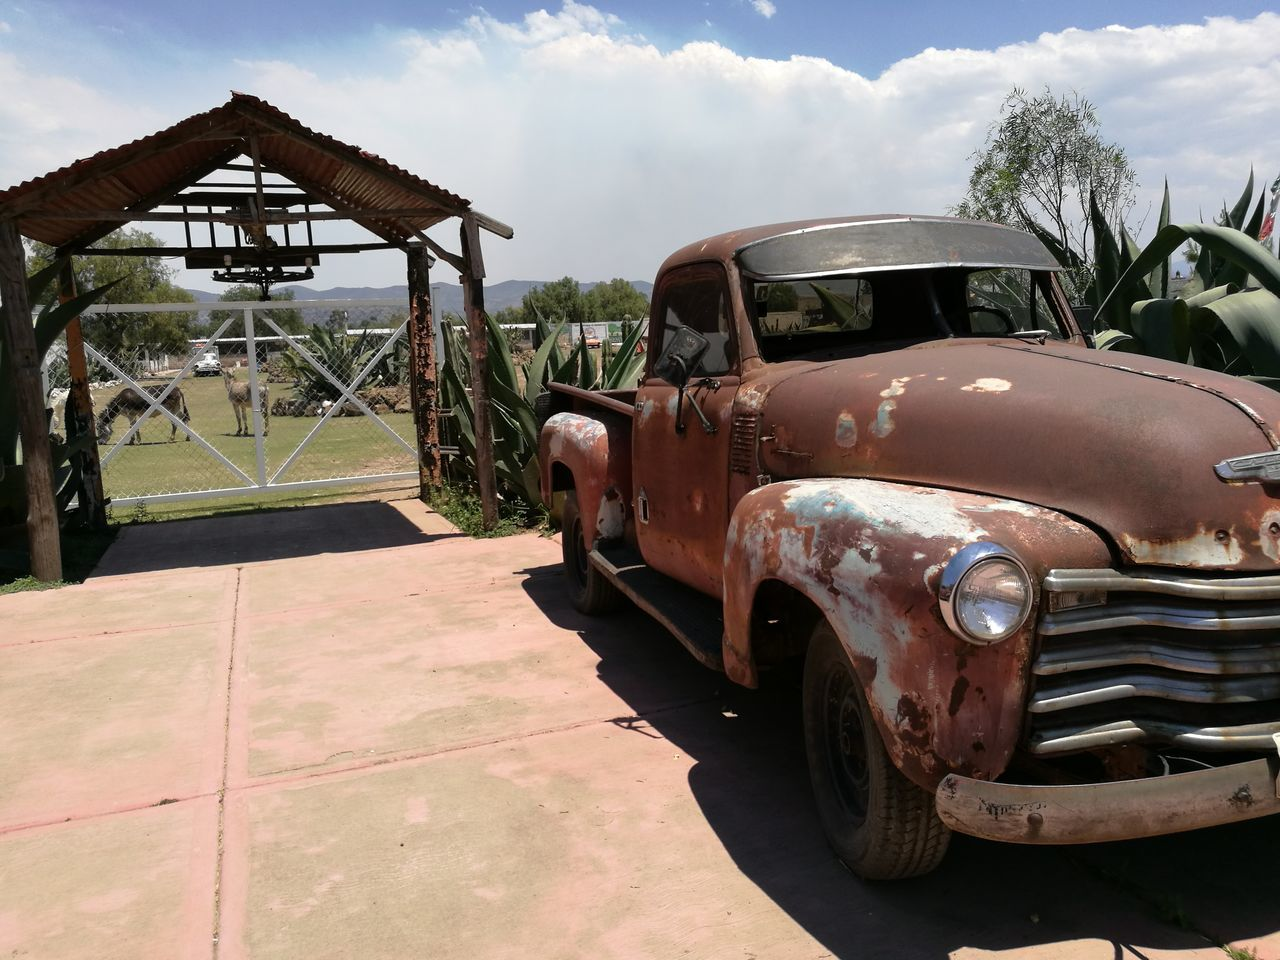 Old truck, farm, donkeys, rural, sky, Outdoors Rural Scene Old-fashioned Retro Styled Rusty Transportation Mexico